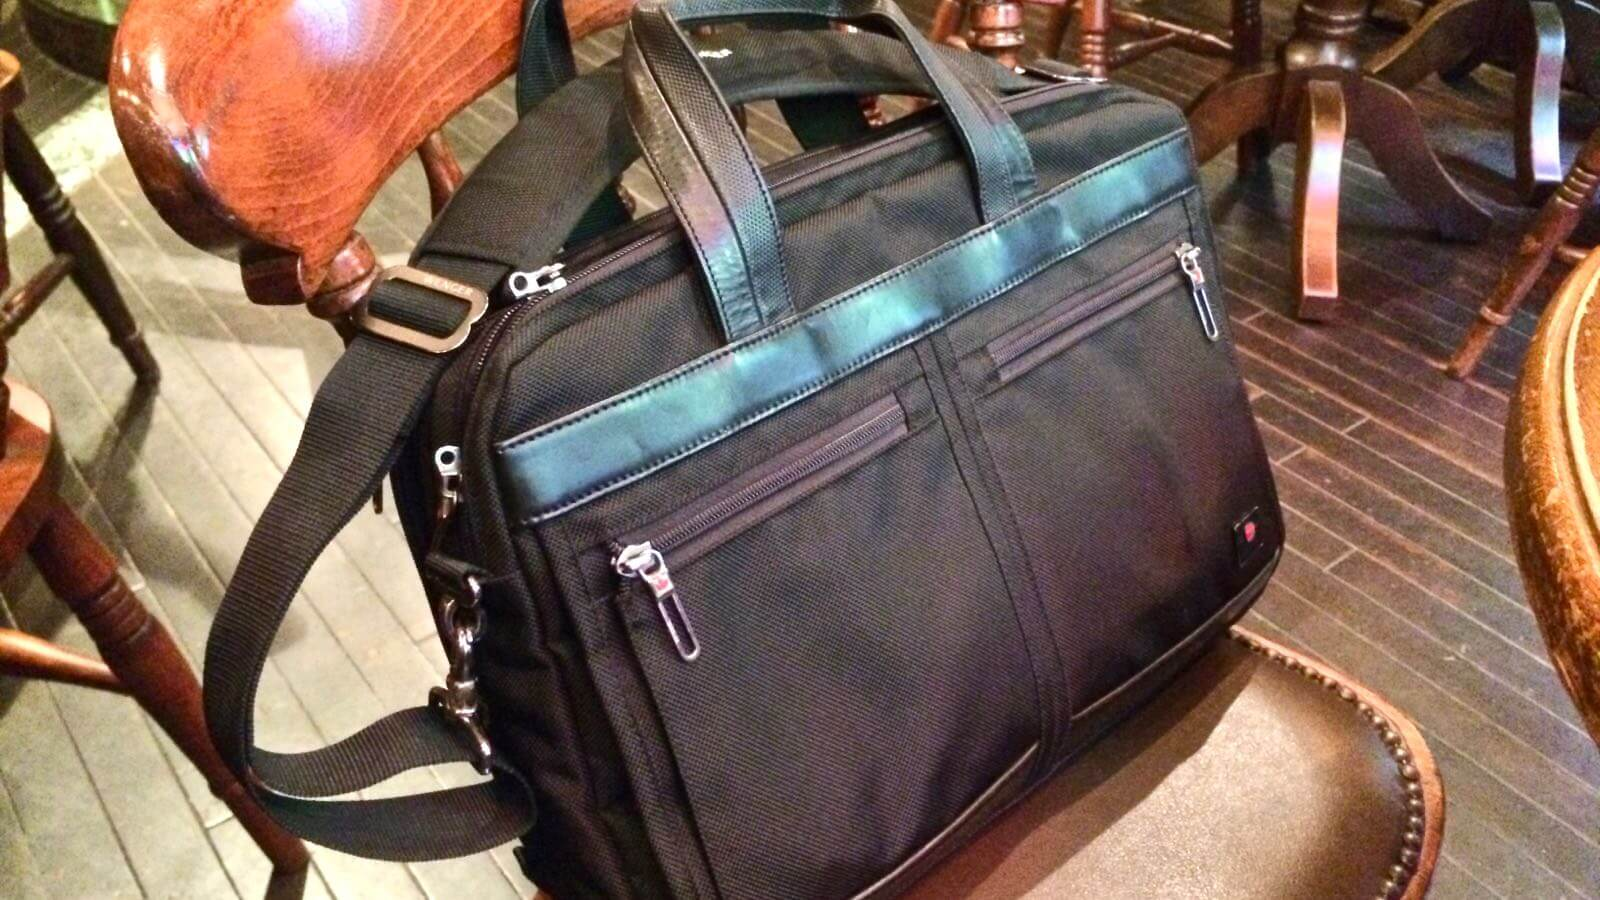 0109 WENGER Anglyph II Bag Review 01